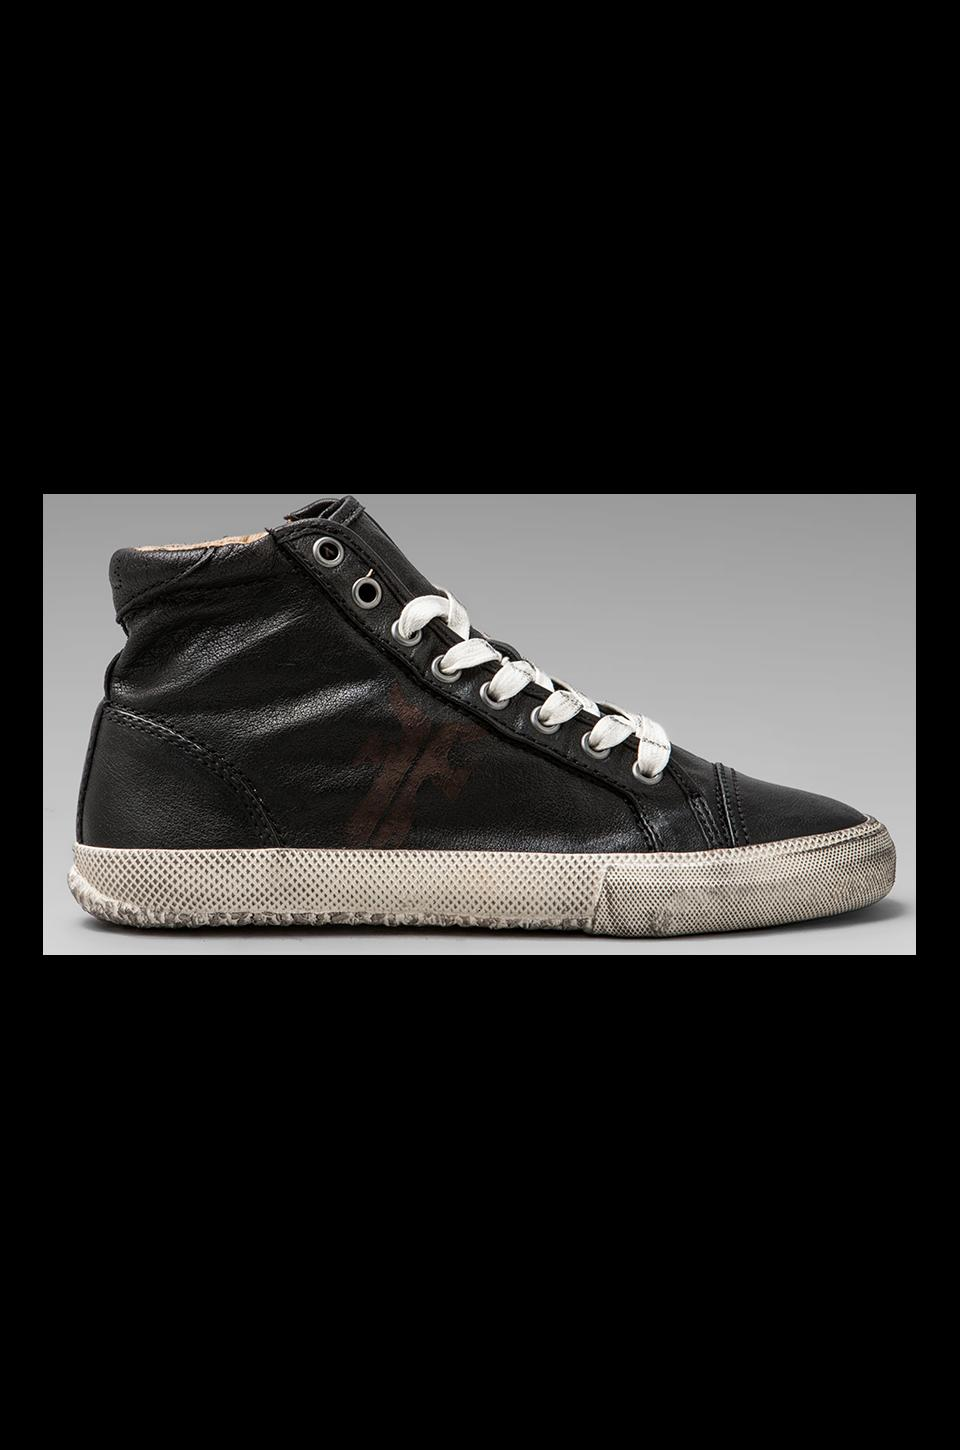 Frye Kira High Top Sneaker in Black